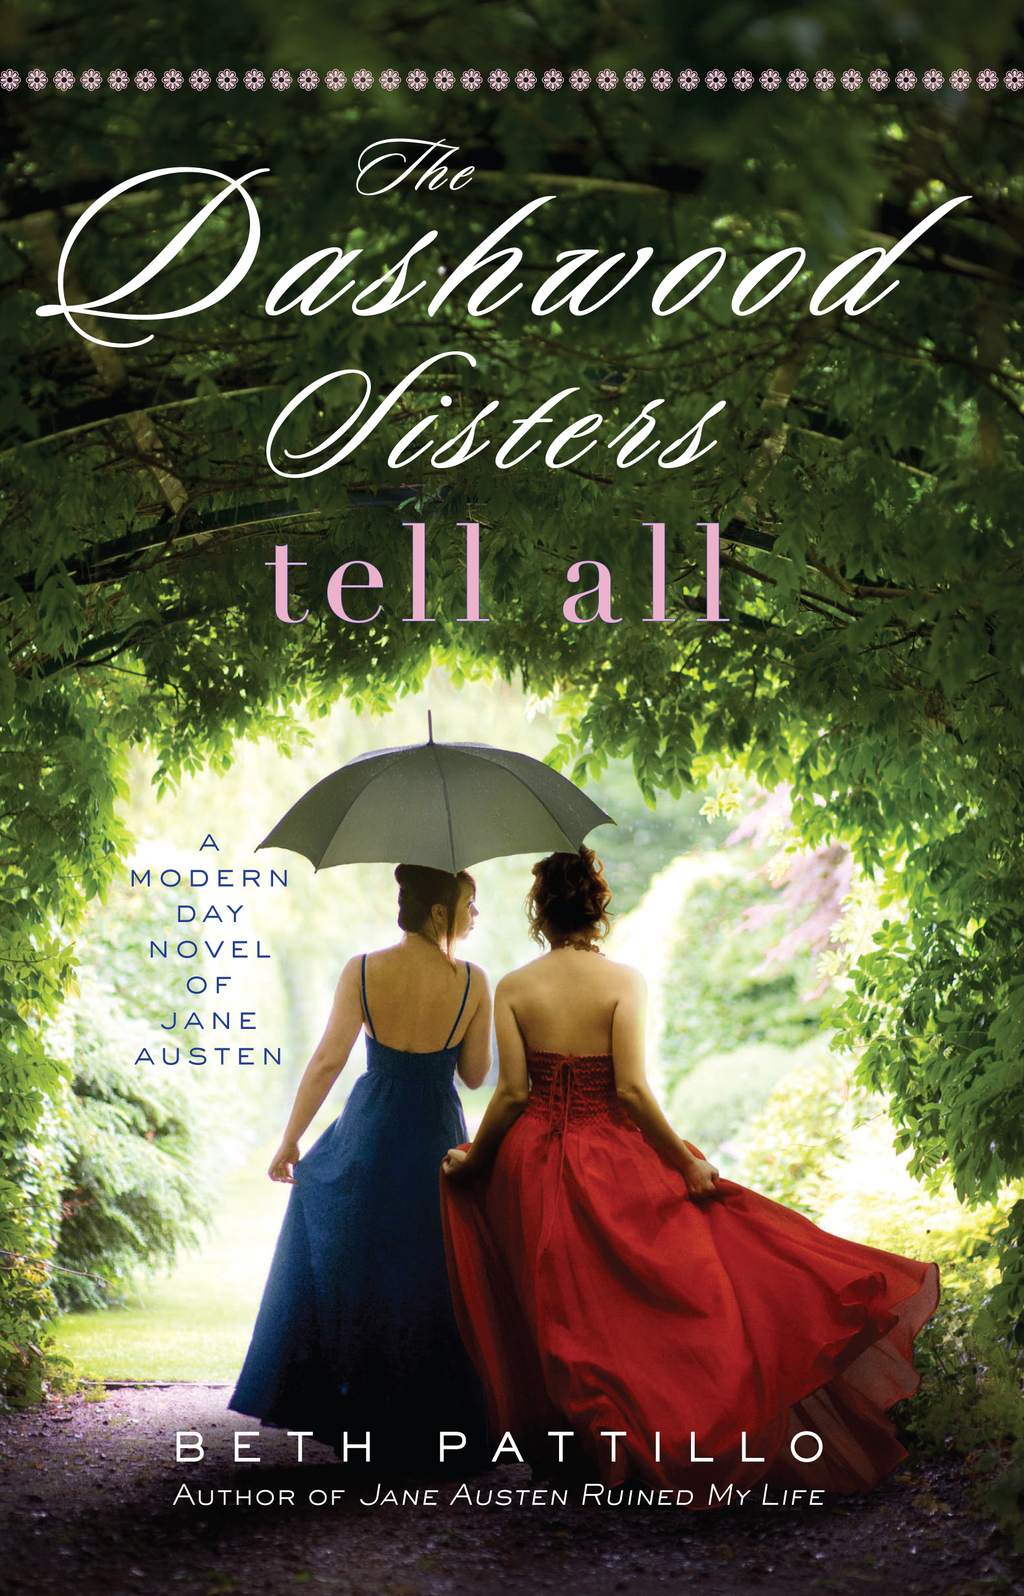 The Dashwood Sisters Tell All: A Modern Day Novel of Jane Austen By: Beth Pattillo